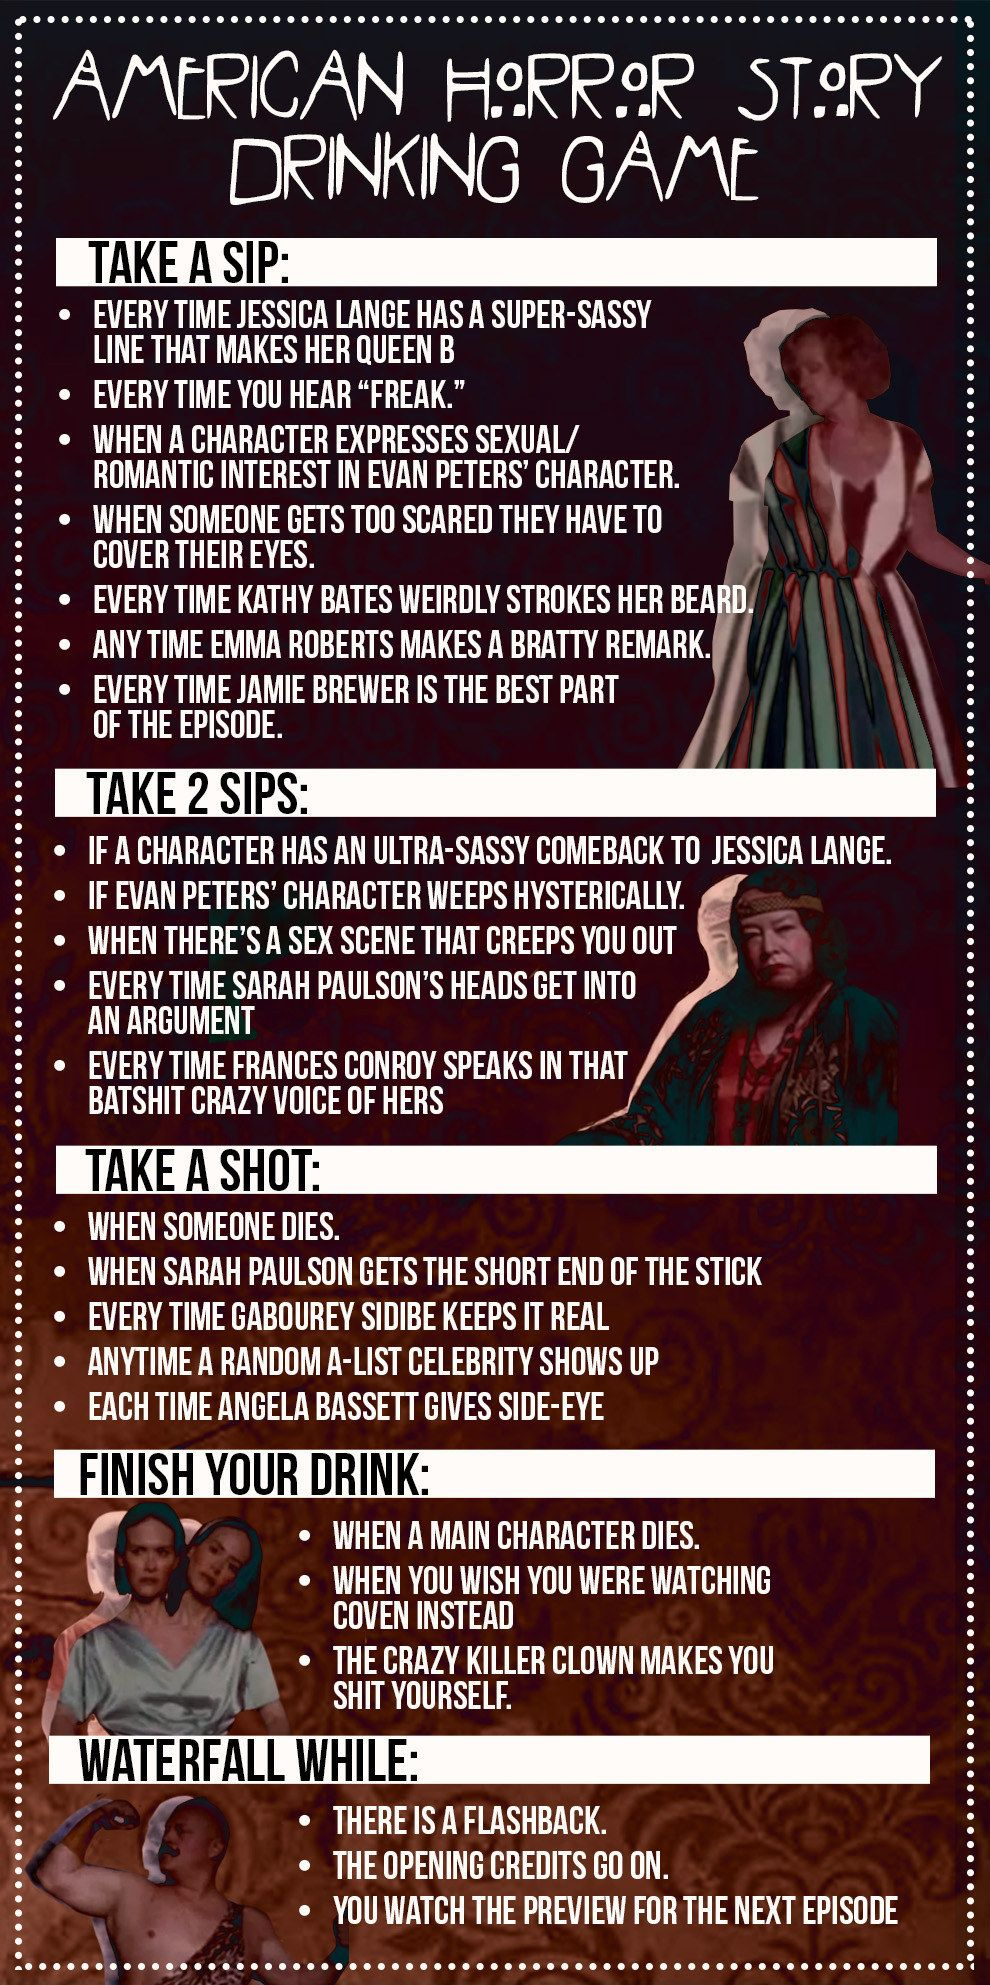 "The ""American Horror Story"" Drinking Game You've Always Needed"